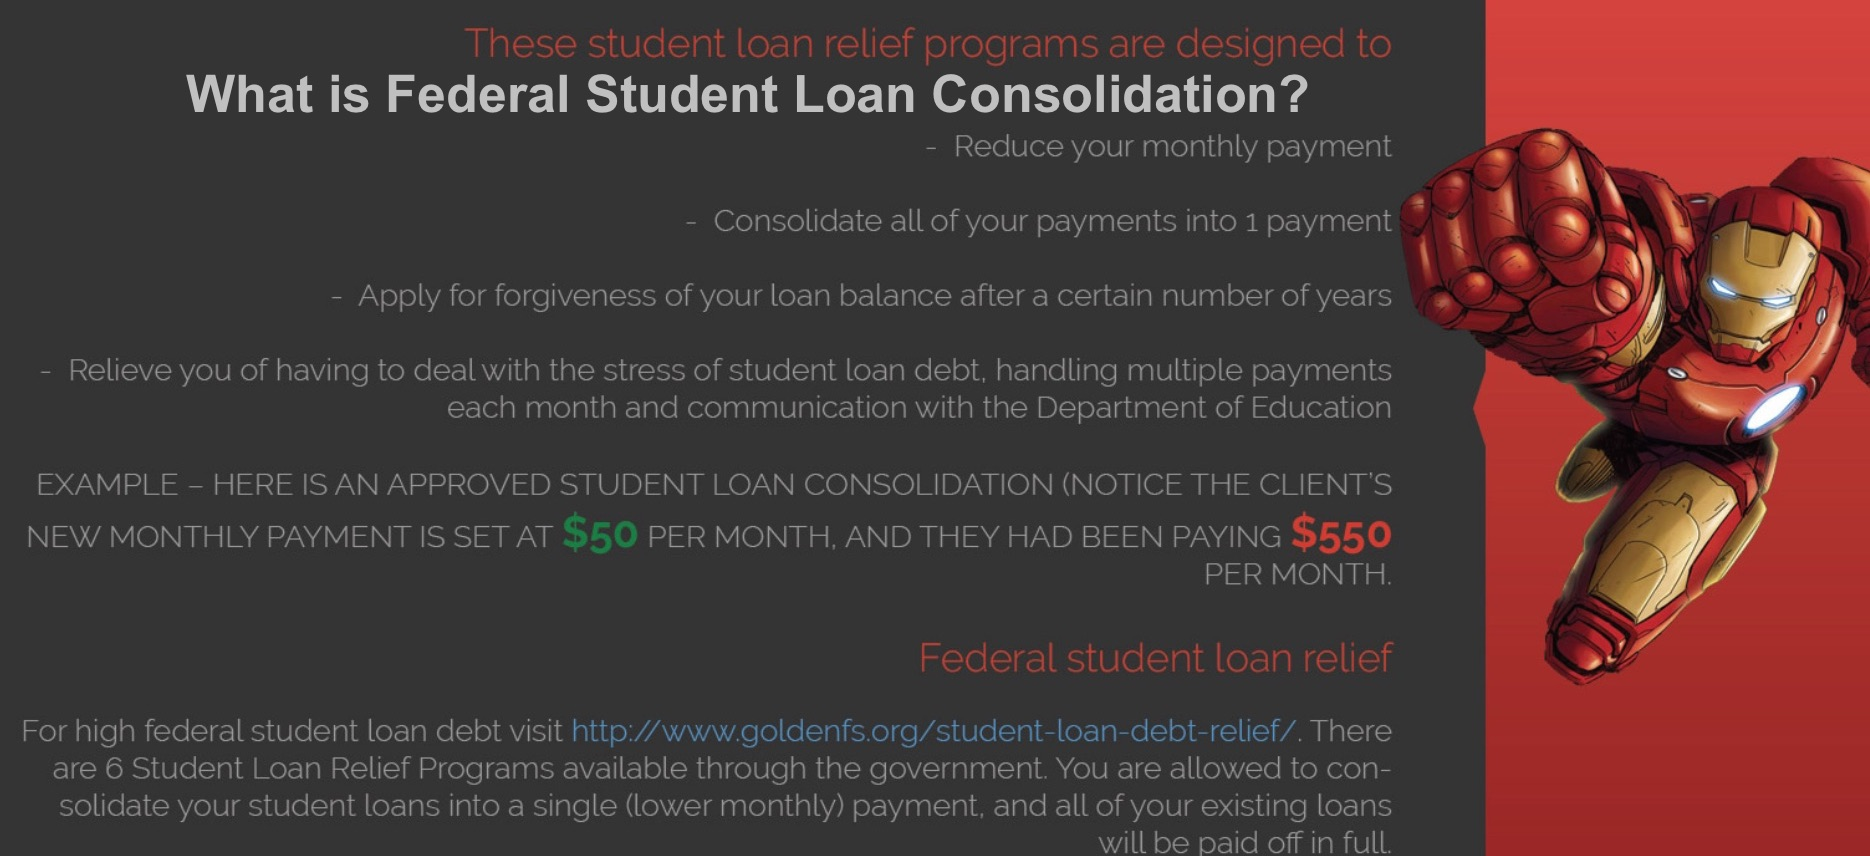 al-federal-student-loan-relief-programs